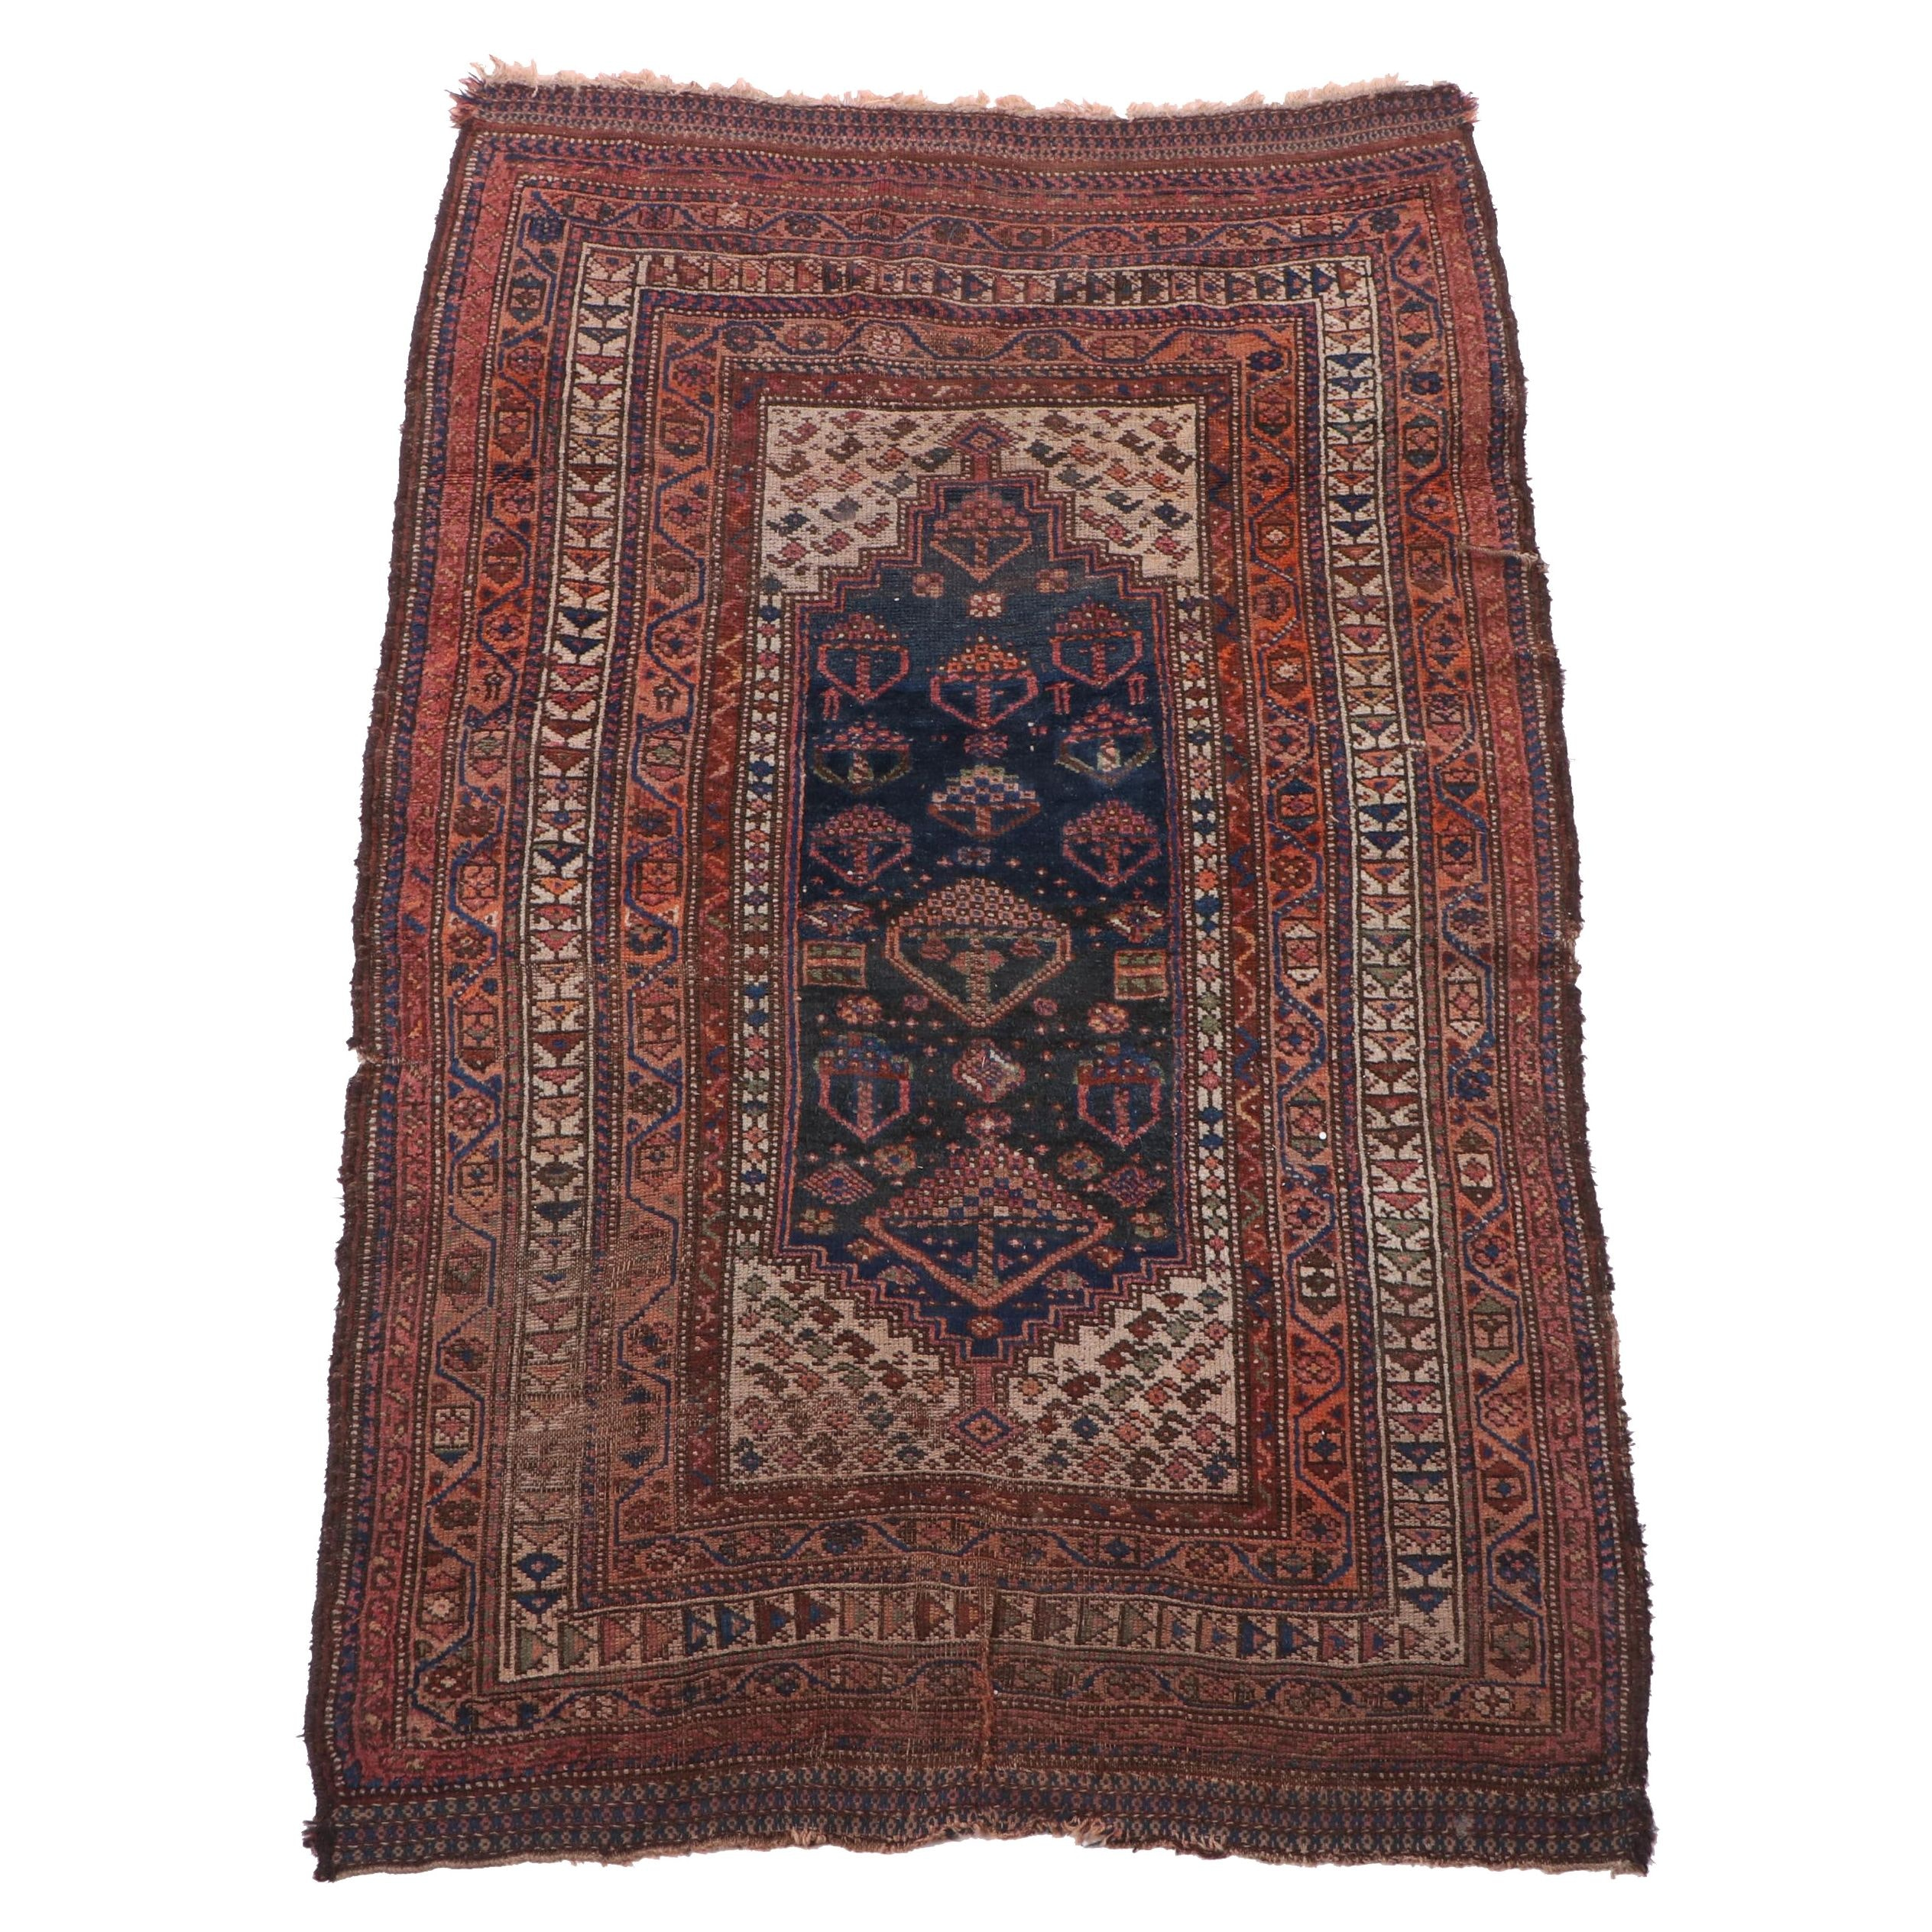 Hand-Knotted Northwest Persian Wool Rug, Late 19th - Early 20th Century